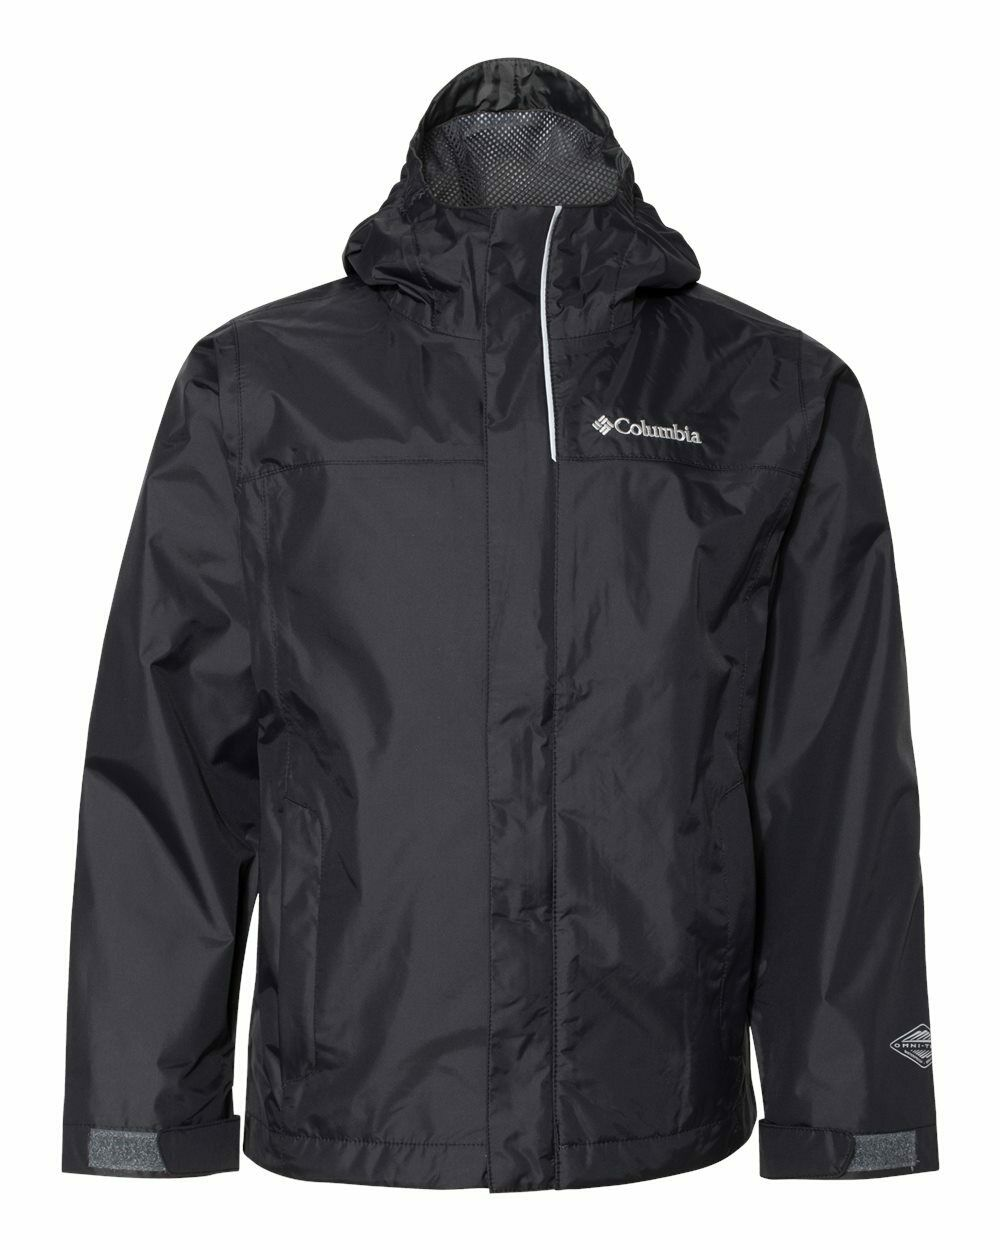 XS-S-M-L-XL NEW COLUMBIA BOYS/' WATERTIGHT RAIN JACKET